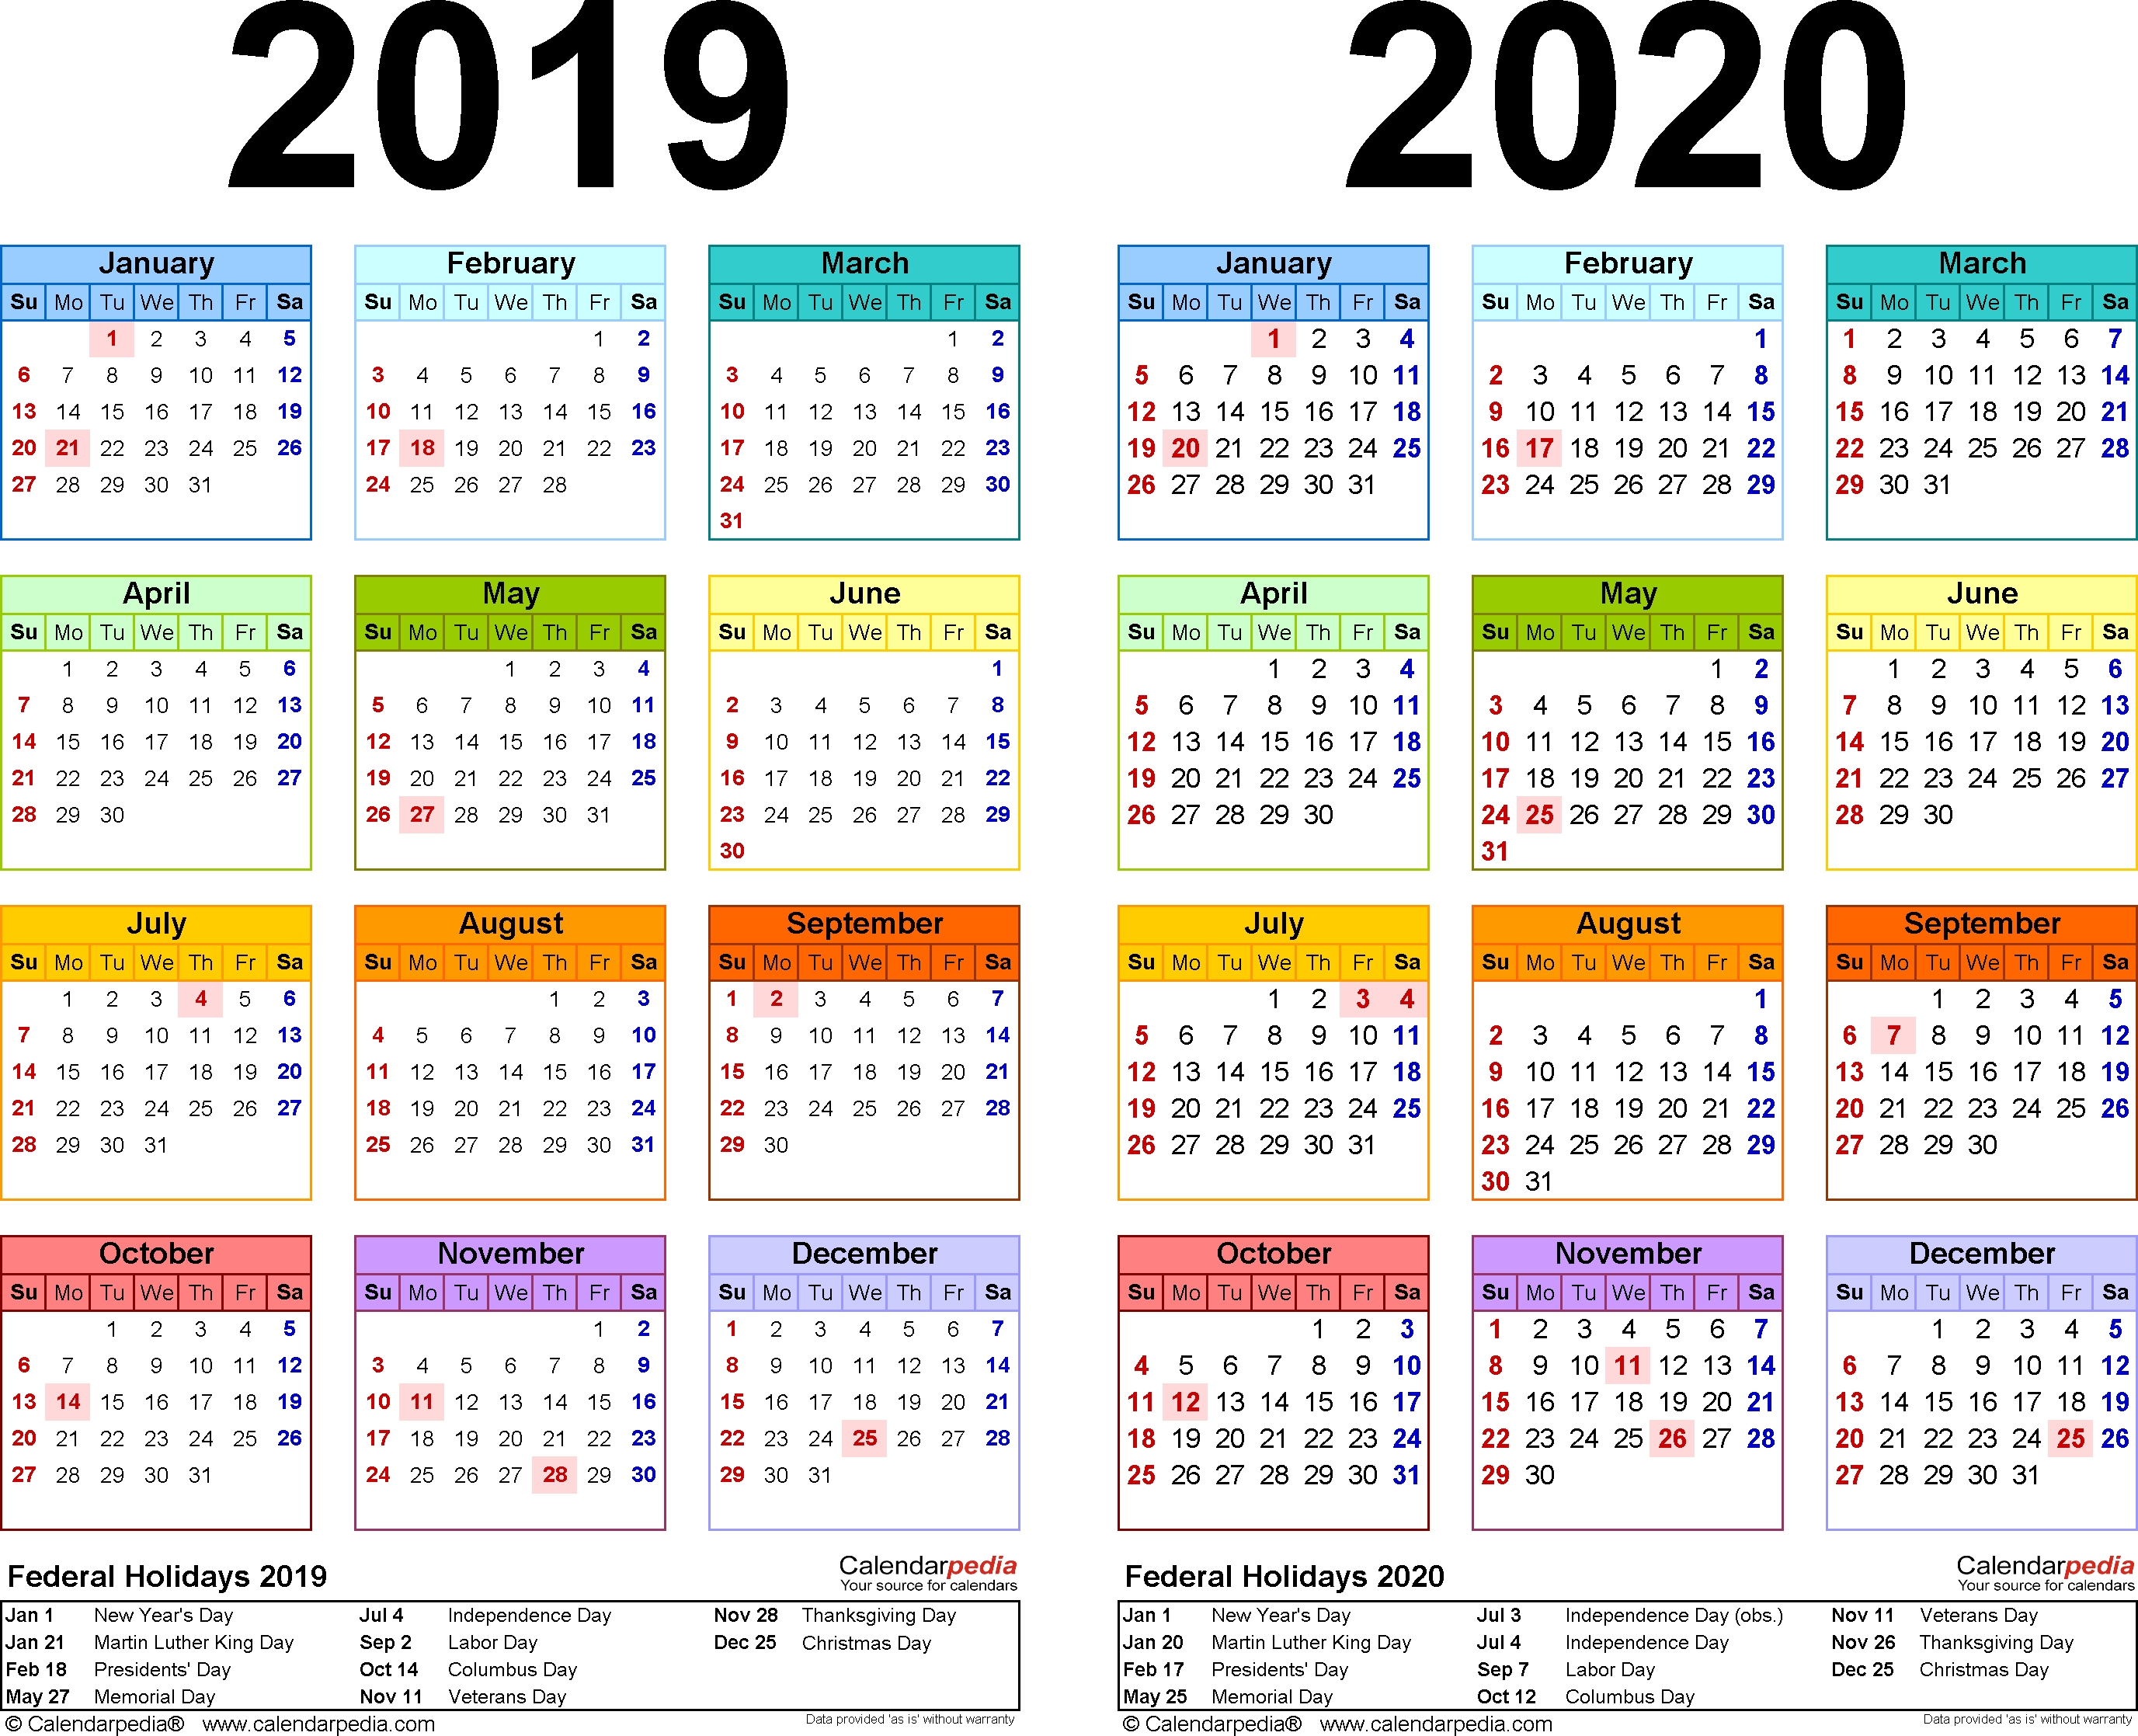 2019-2020 Calendar - Free Printable Two-Year Pdf Calendars within Print 2019/2020 Financial Year Calendar On One Page